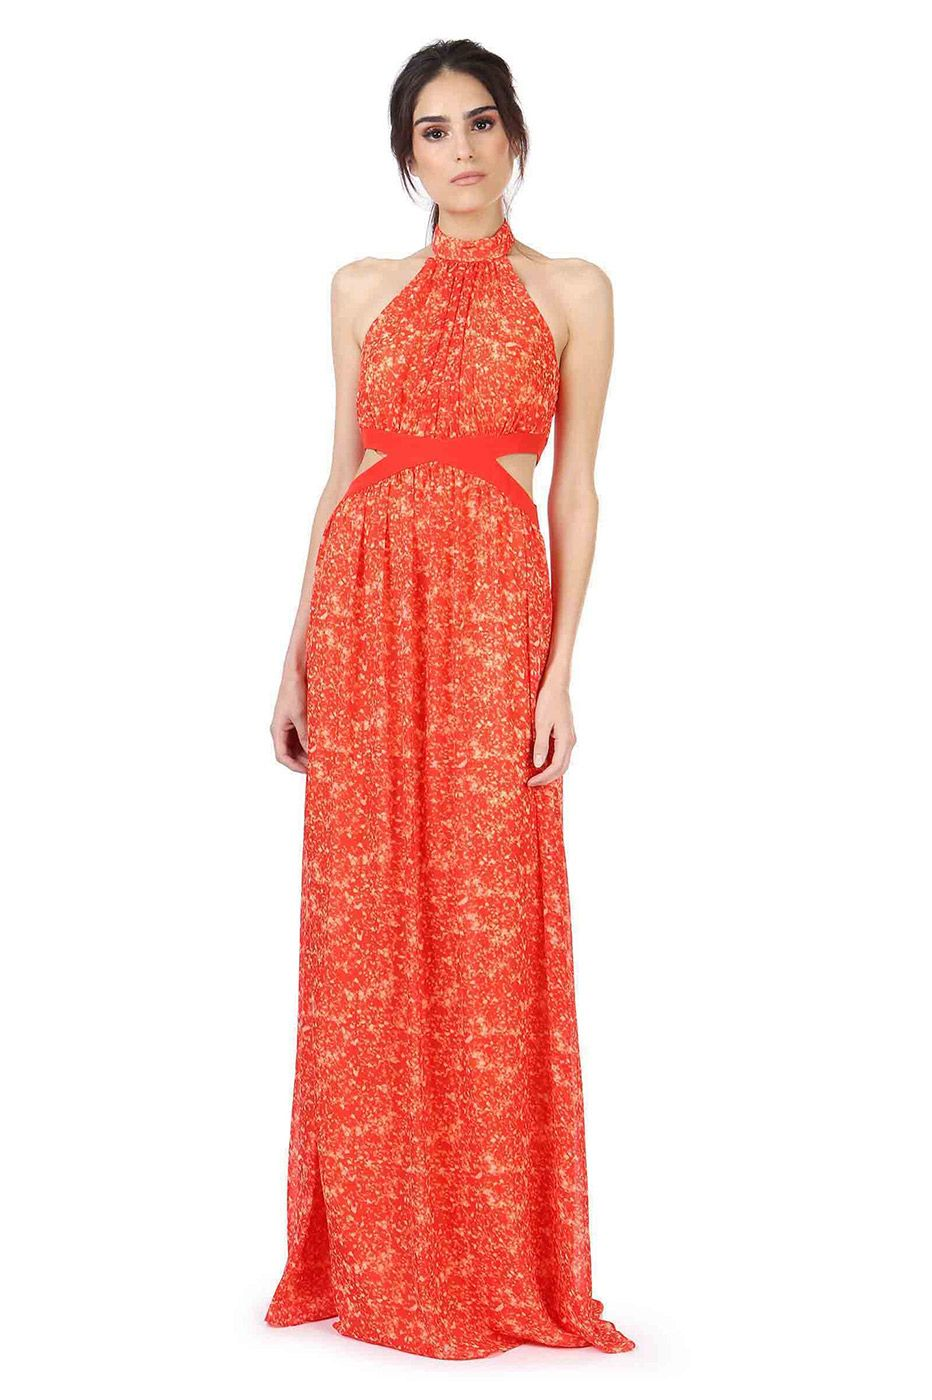 378c031765 PARRIS MAXI DRESS was  465 now  140 PRINTED SILK CHIFFON GOWN WITH SHIRRED  HIGH NECK AND